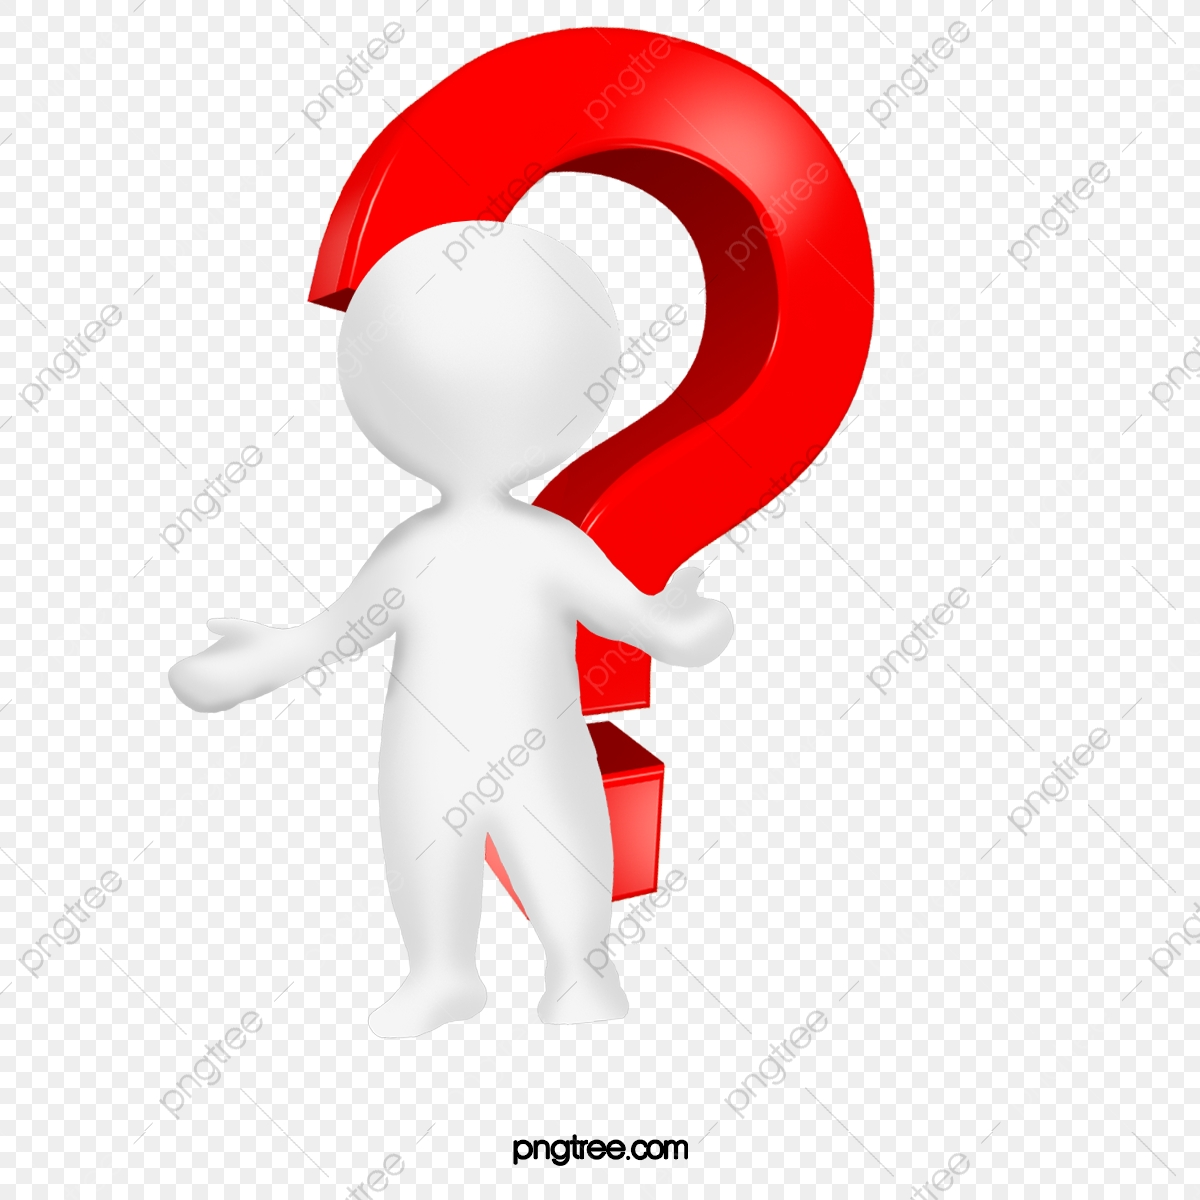 Red Question Mark To Avoid Pulling, Question Clipart, Question Mark.